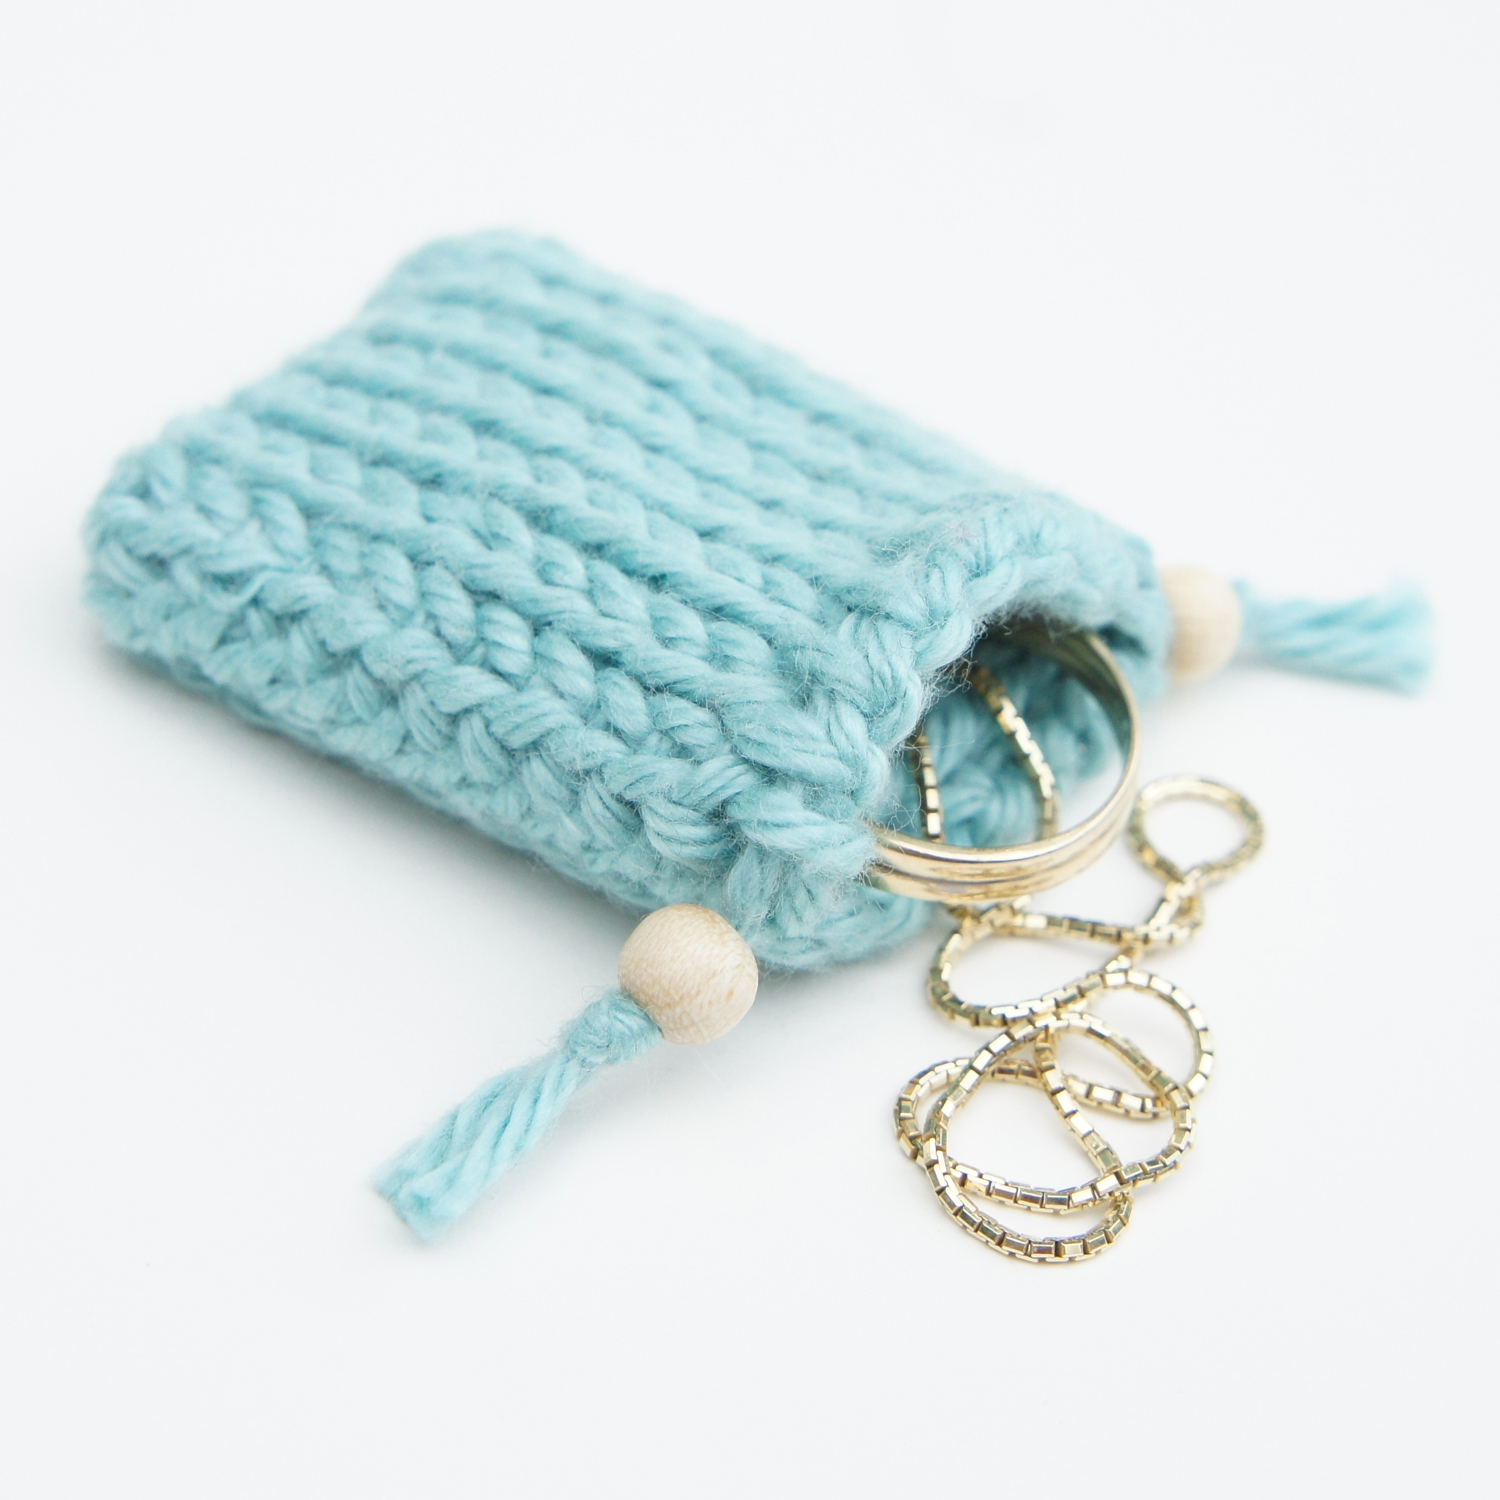 Small Bag Crochet Pattern : ... cute design shop: new tunisian crochet pattern - drawstring gift bags